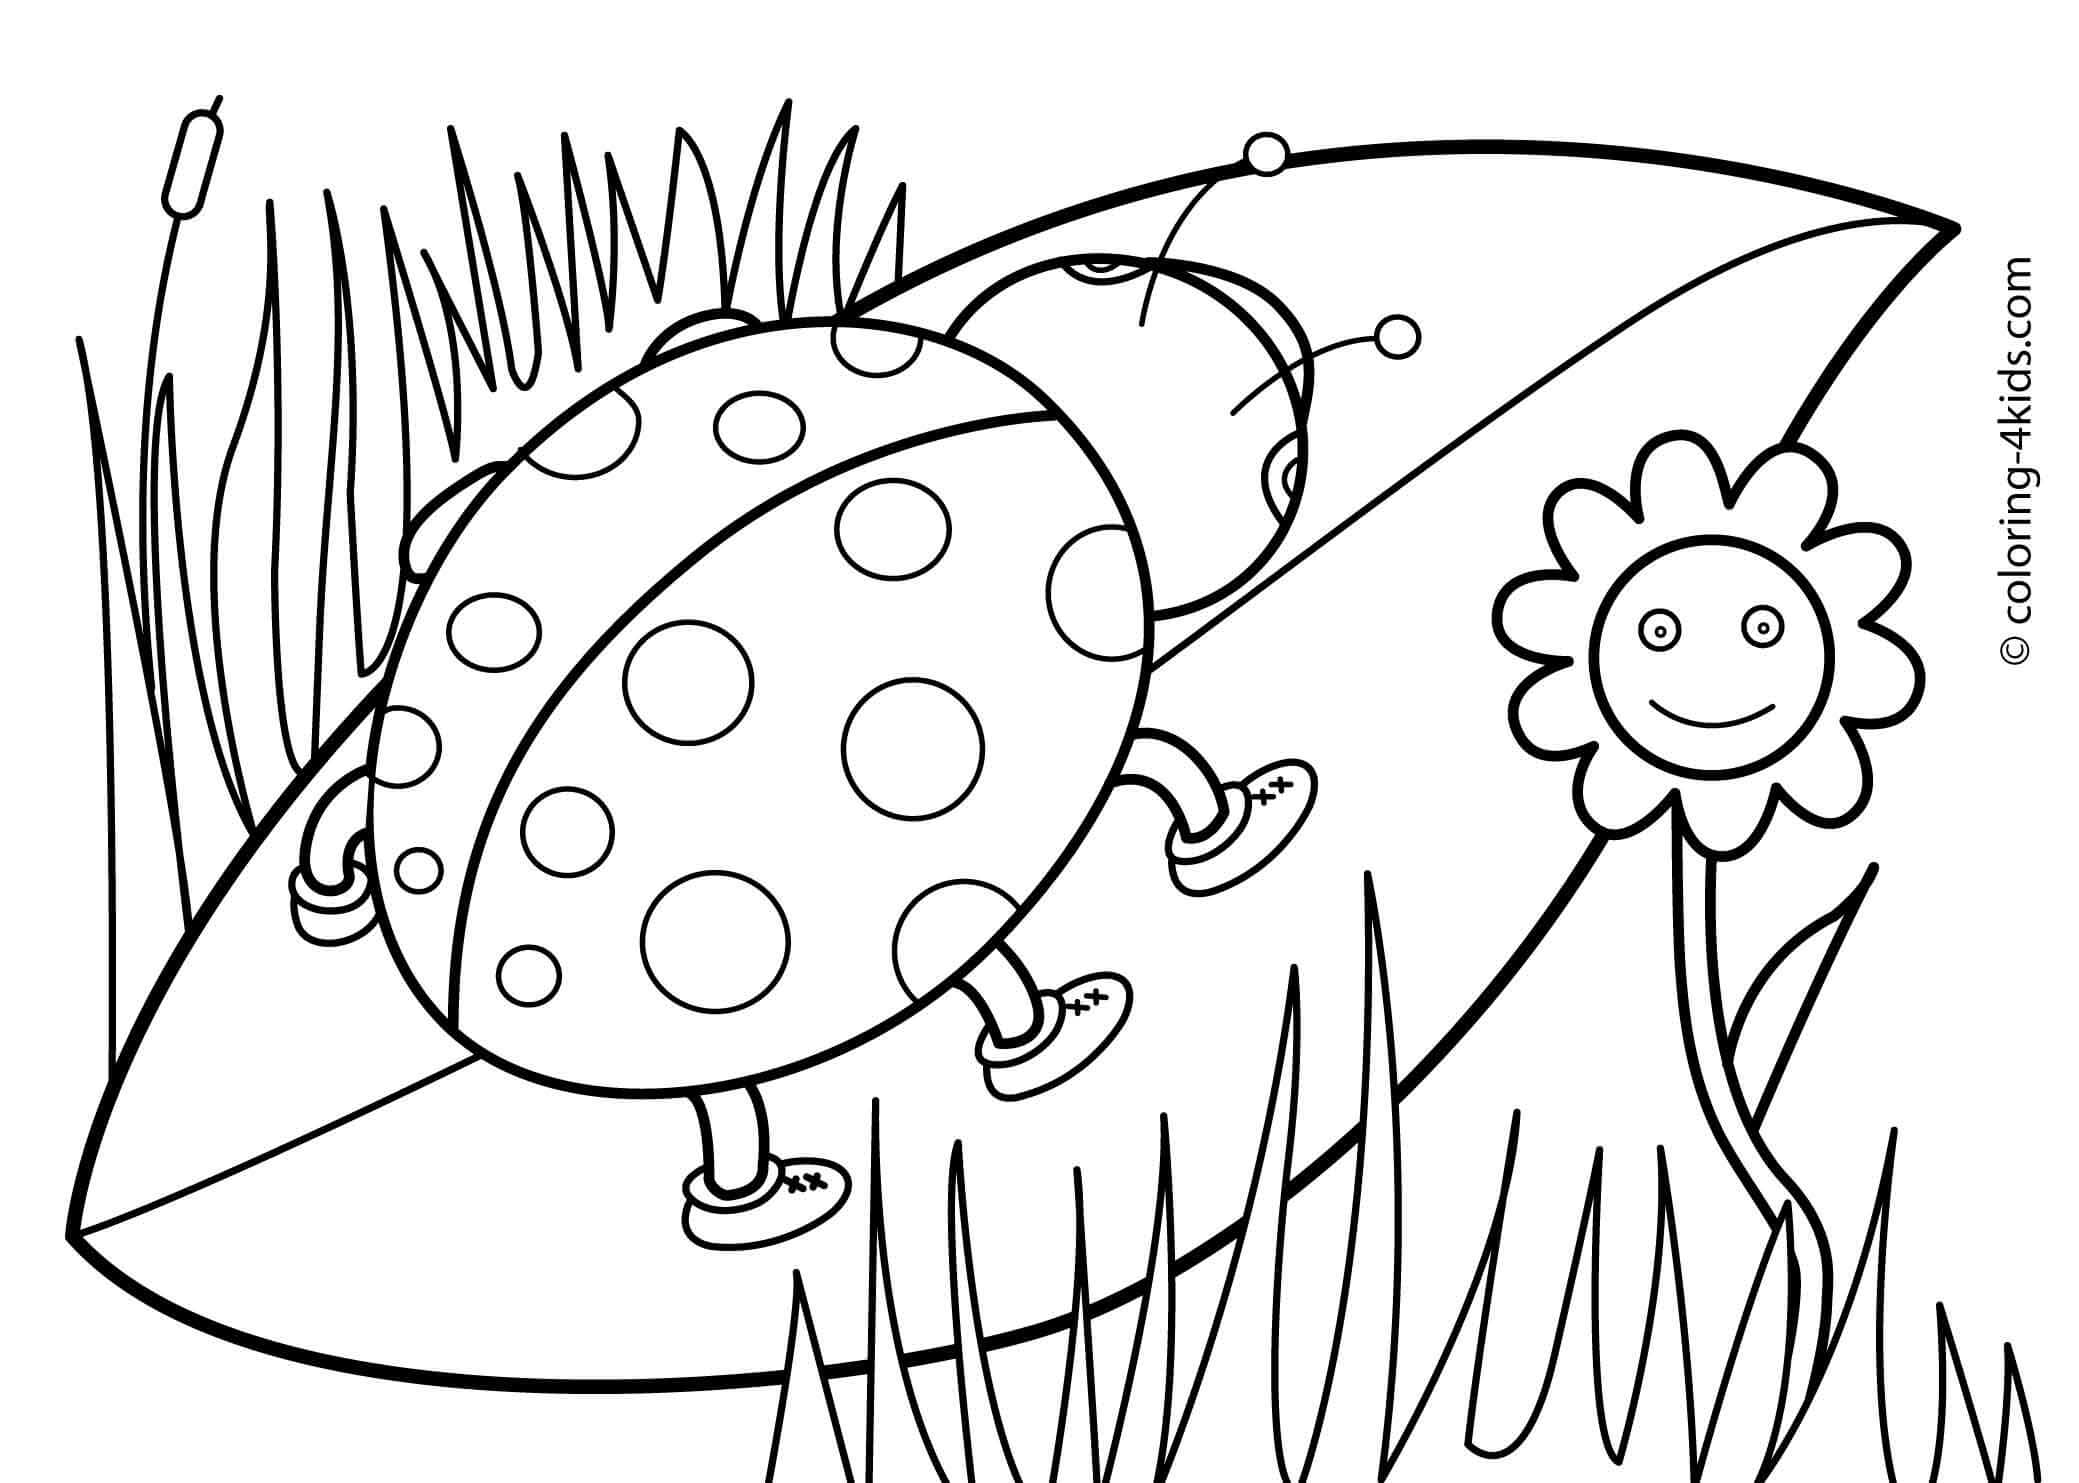 Free printable spring coloring pages for adults coloring for Free printable spring coloring pages for adults